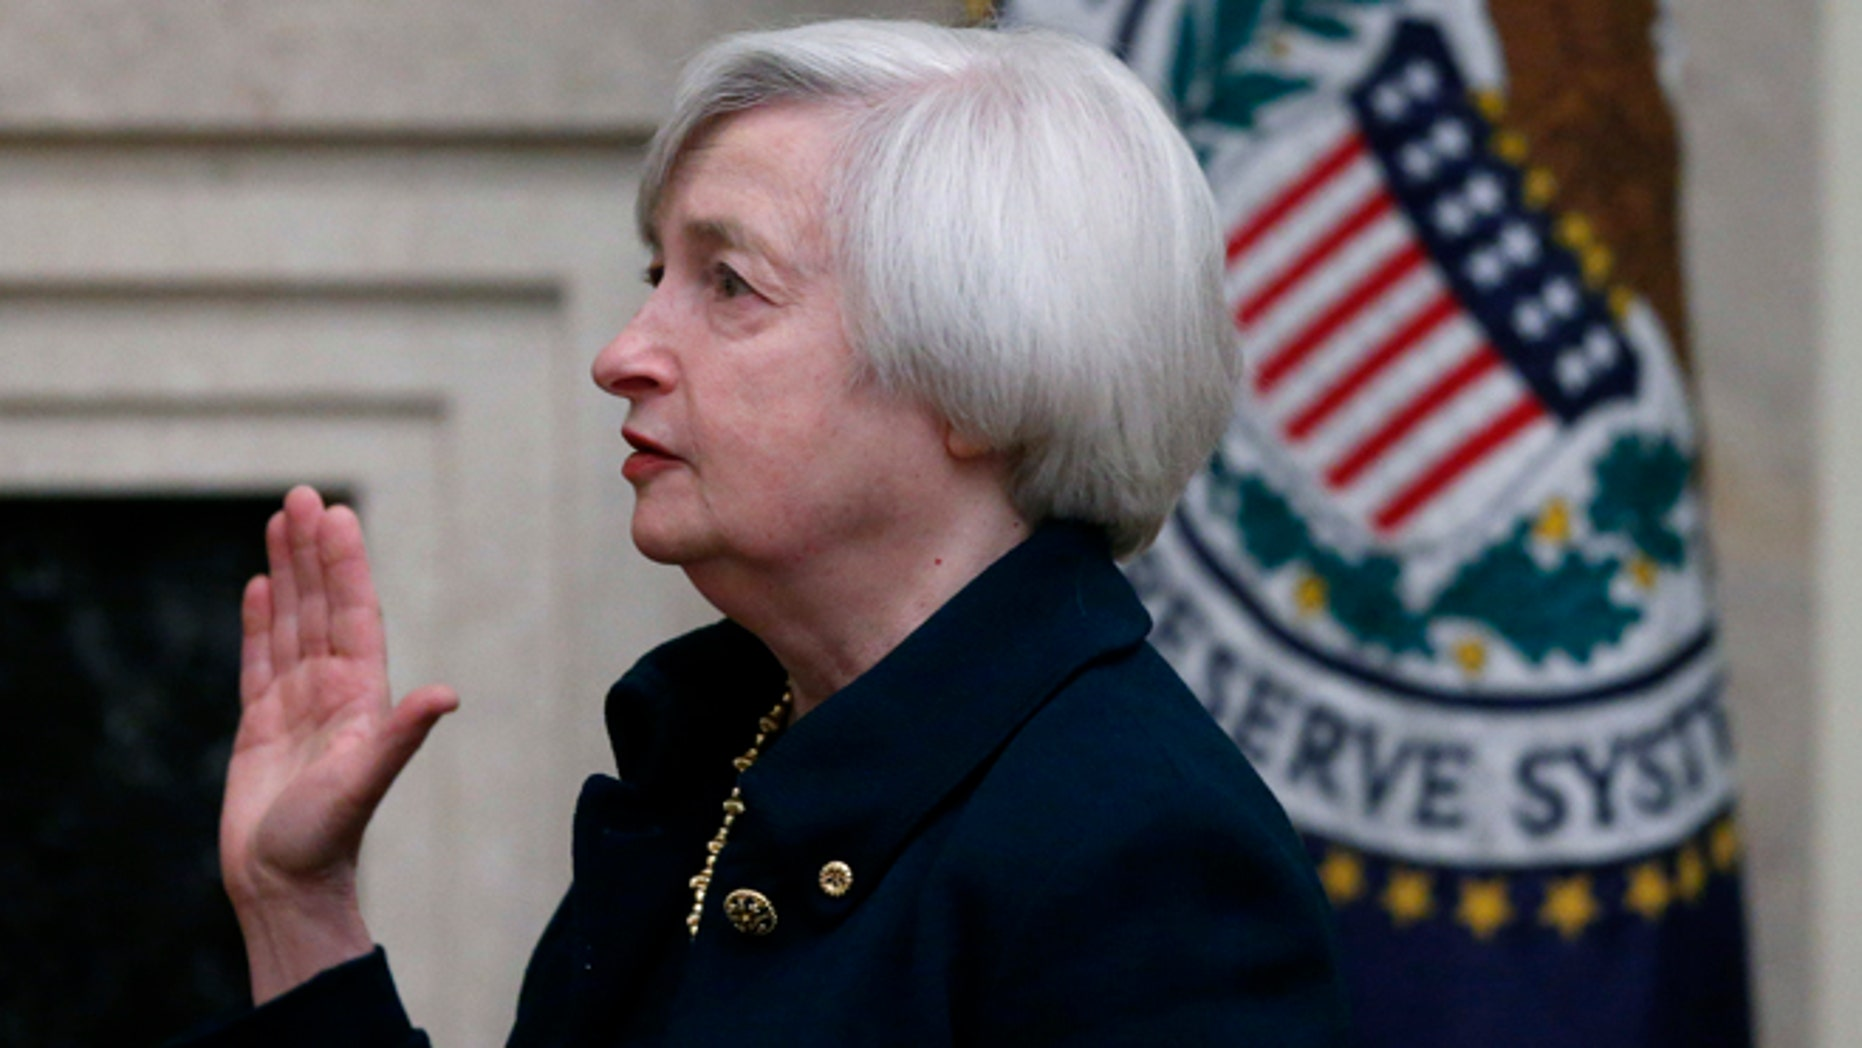 Feb. 3, 2014: Janet Yellen is sworn in as Federal Reserve Board Chair. She's the first woman to lead the Federal Reserve in its 100-year history.